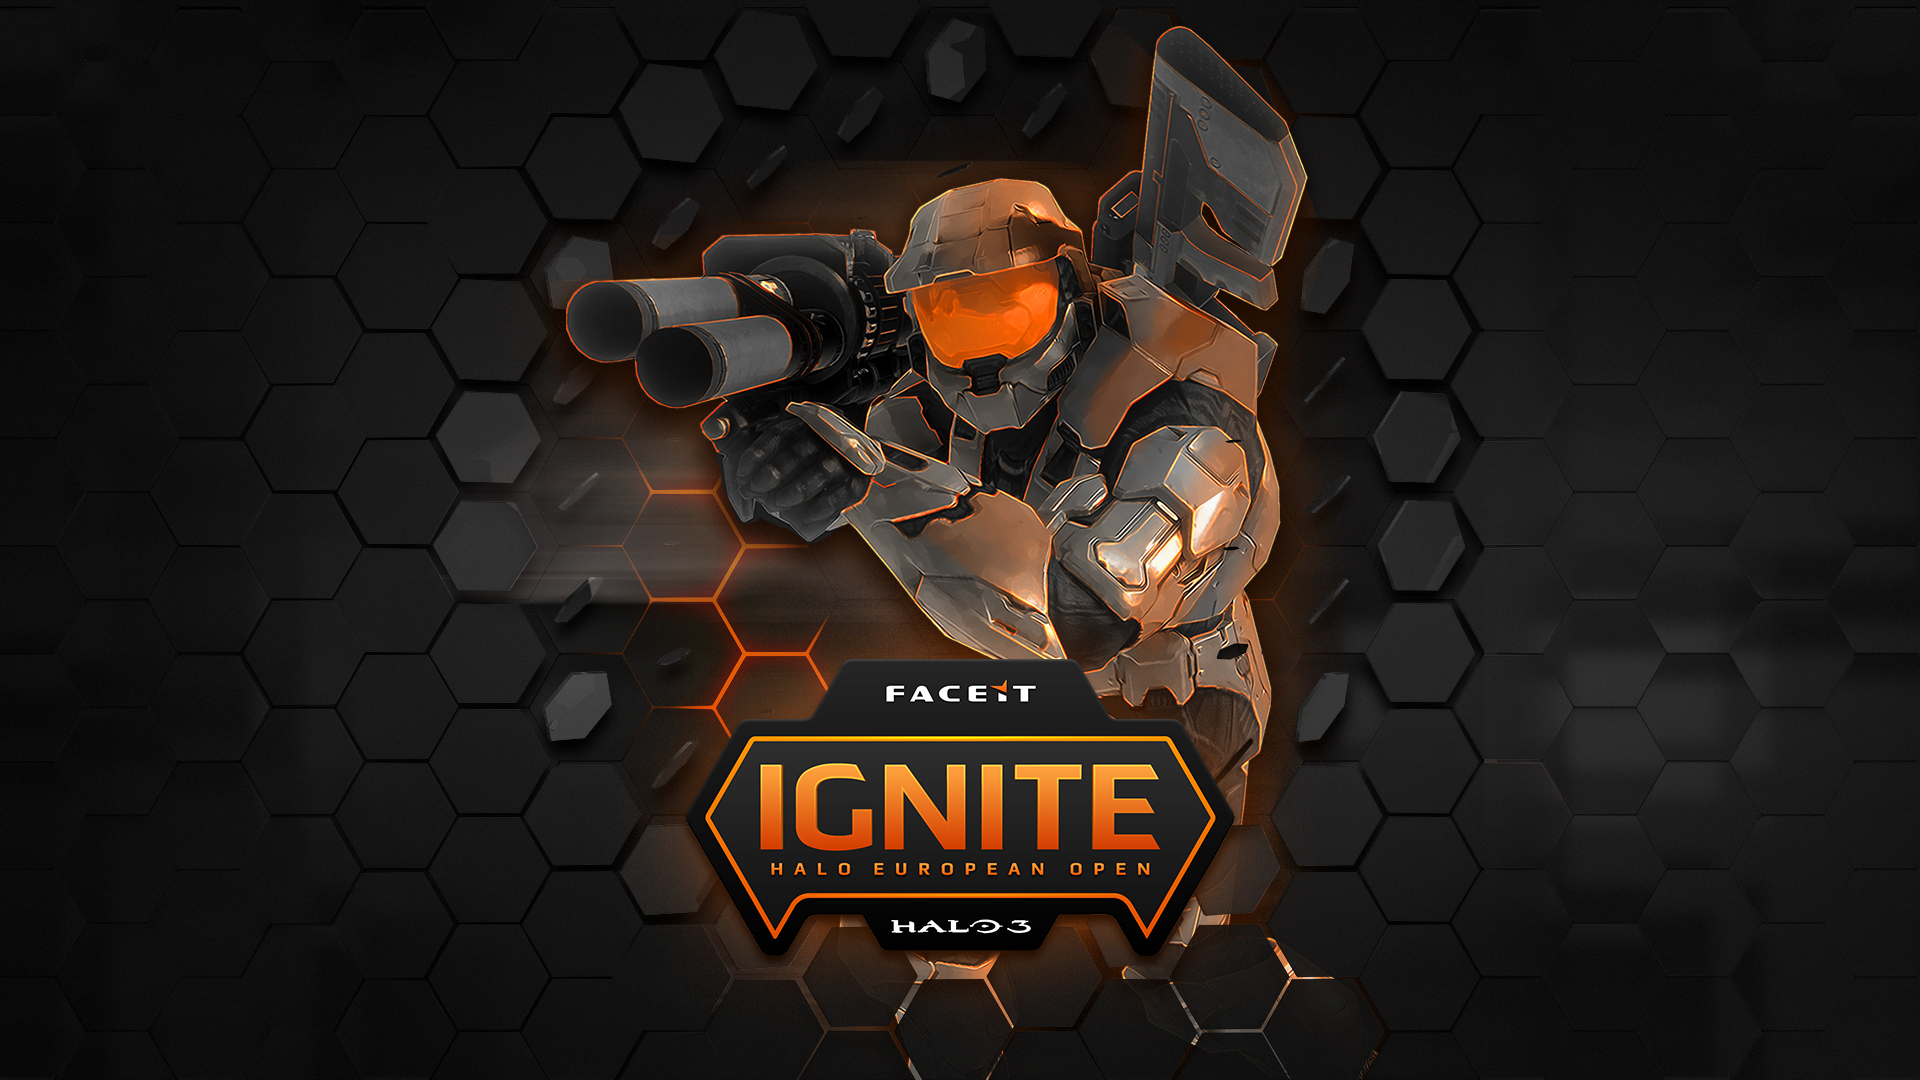 Gambar Dari Faceit Ignite Halo European Open Taking Place In